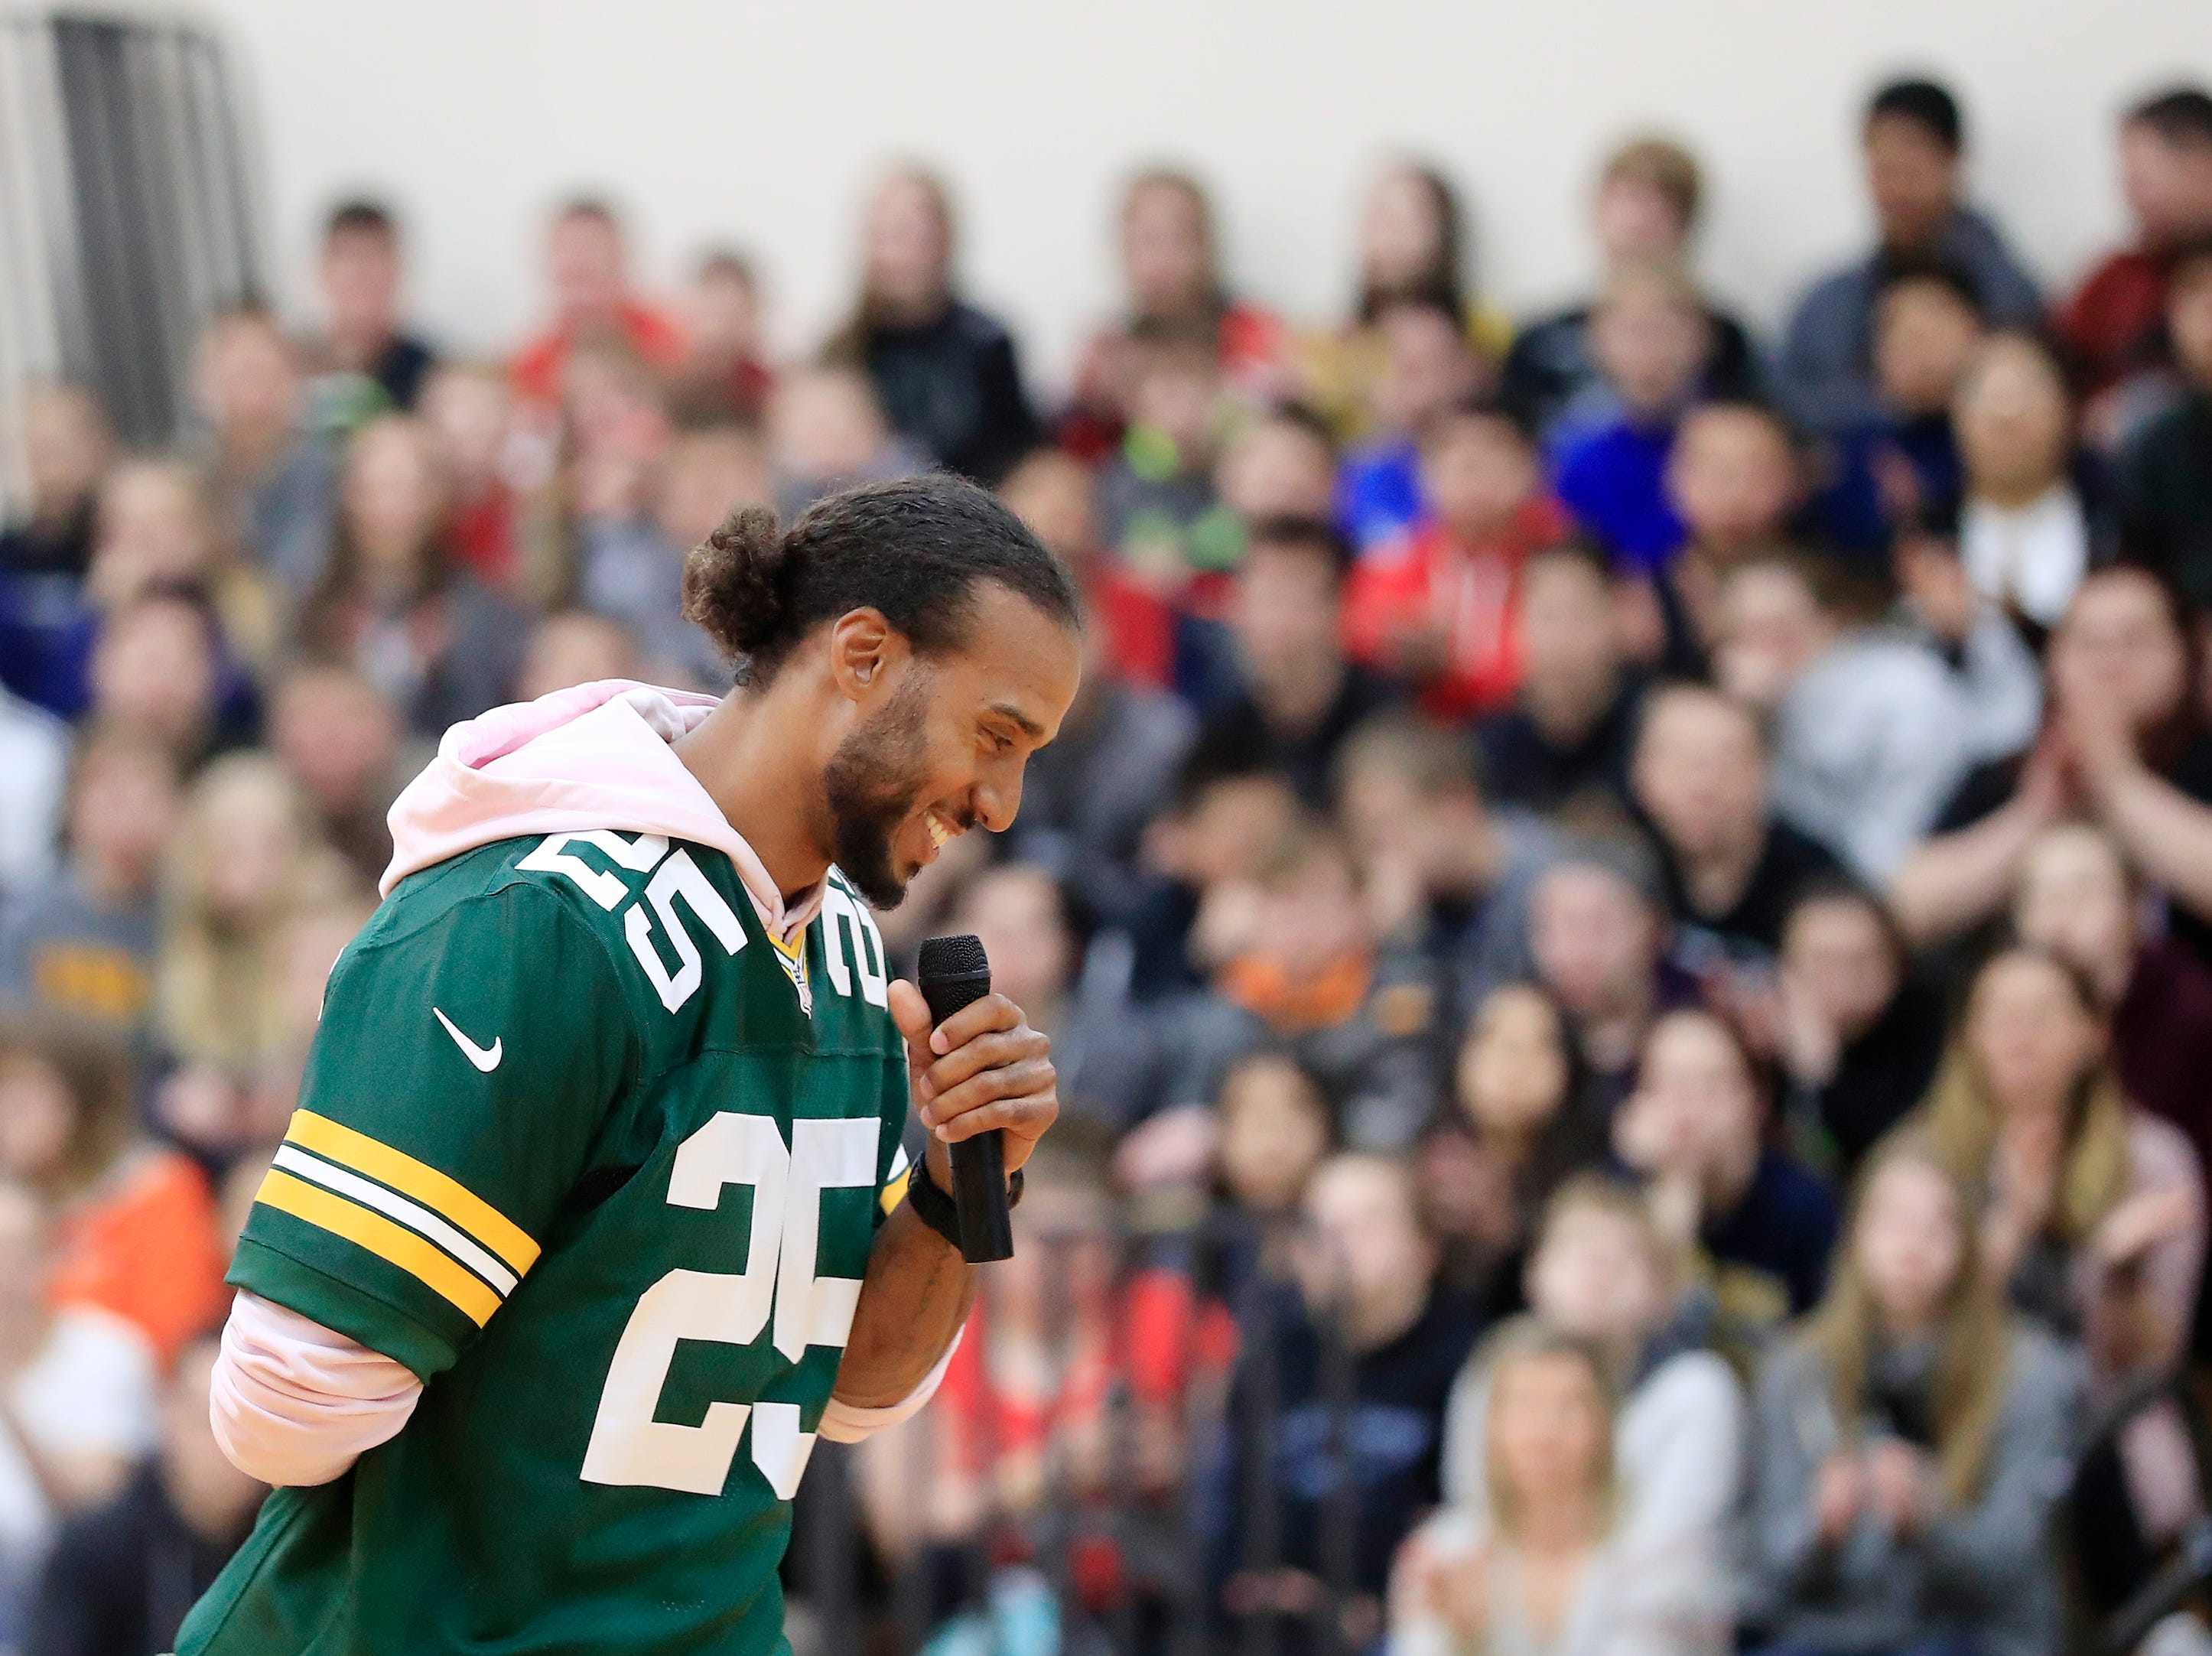 Former Green Bay Packers player Ryan Grant speaks during a stop on the Packers Tailgate Tour at Clintonville High School on Tuesday, April 9, 2019 in Clintonville, Wis.